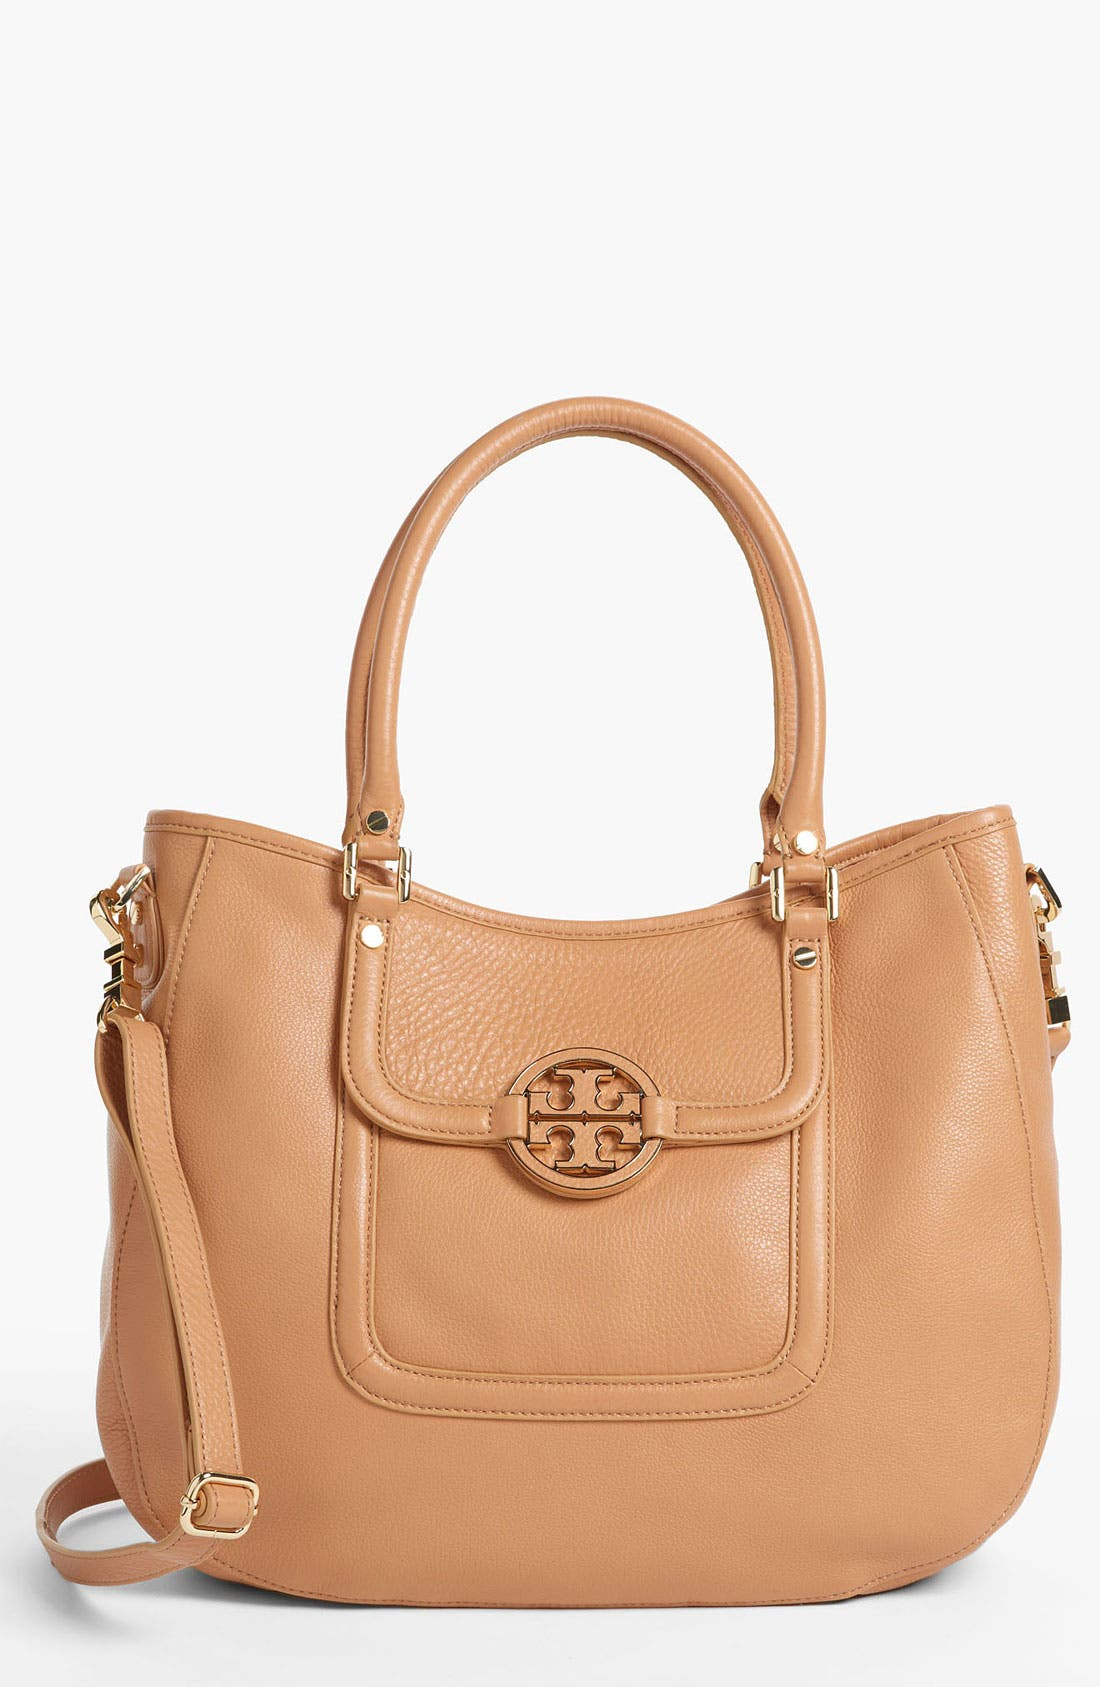 Main Image - Tory Burch 'Amanda - Angelux' Leather Hobo